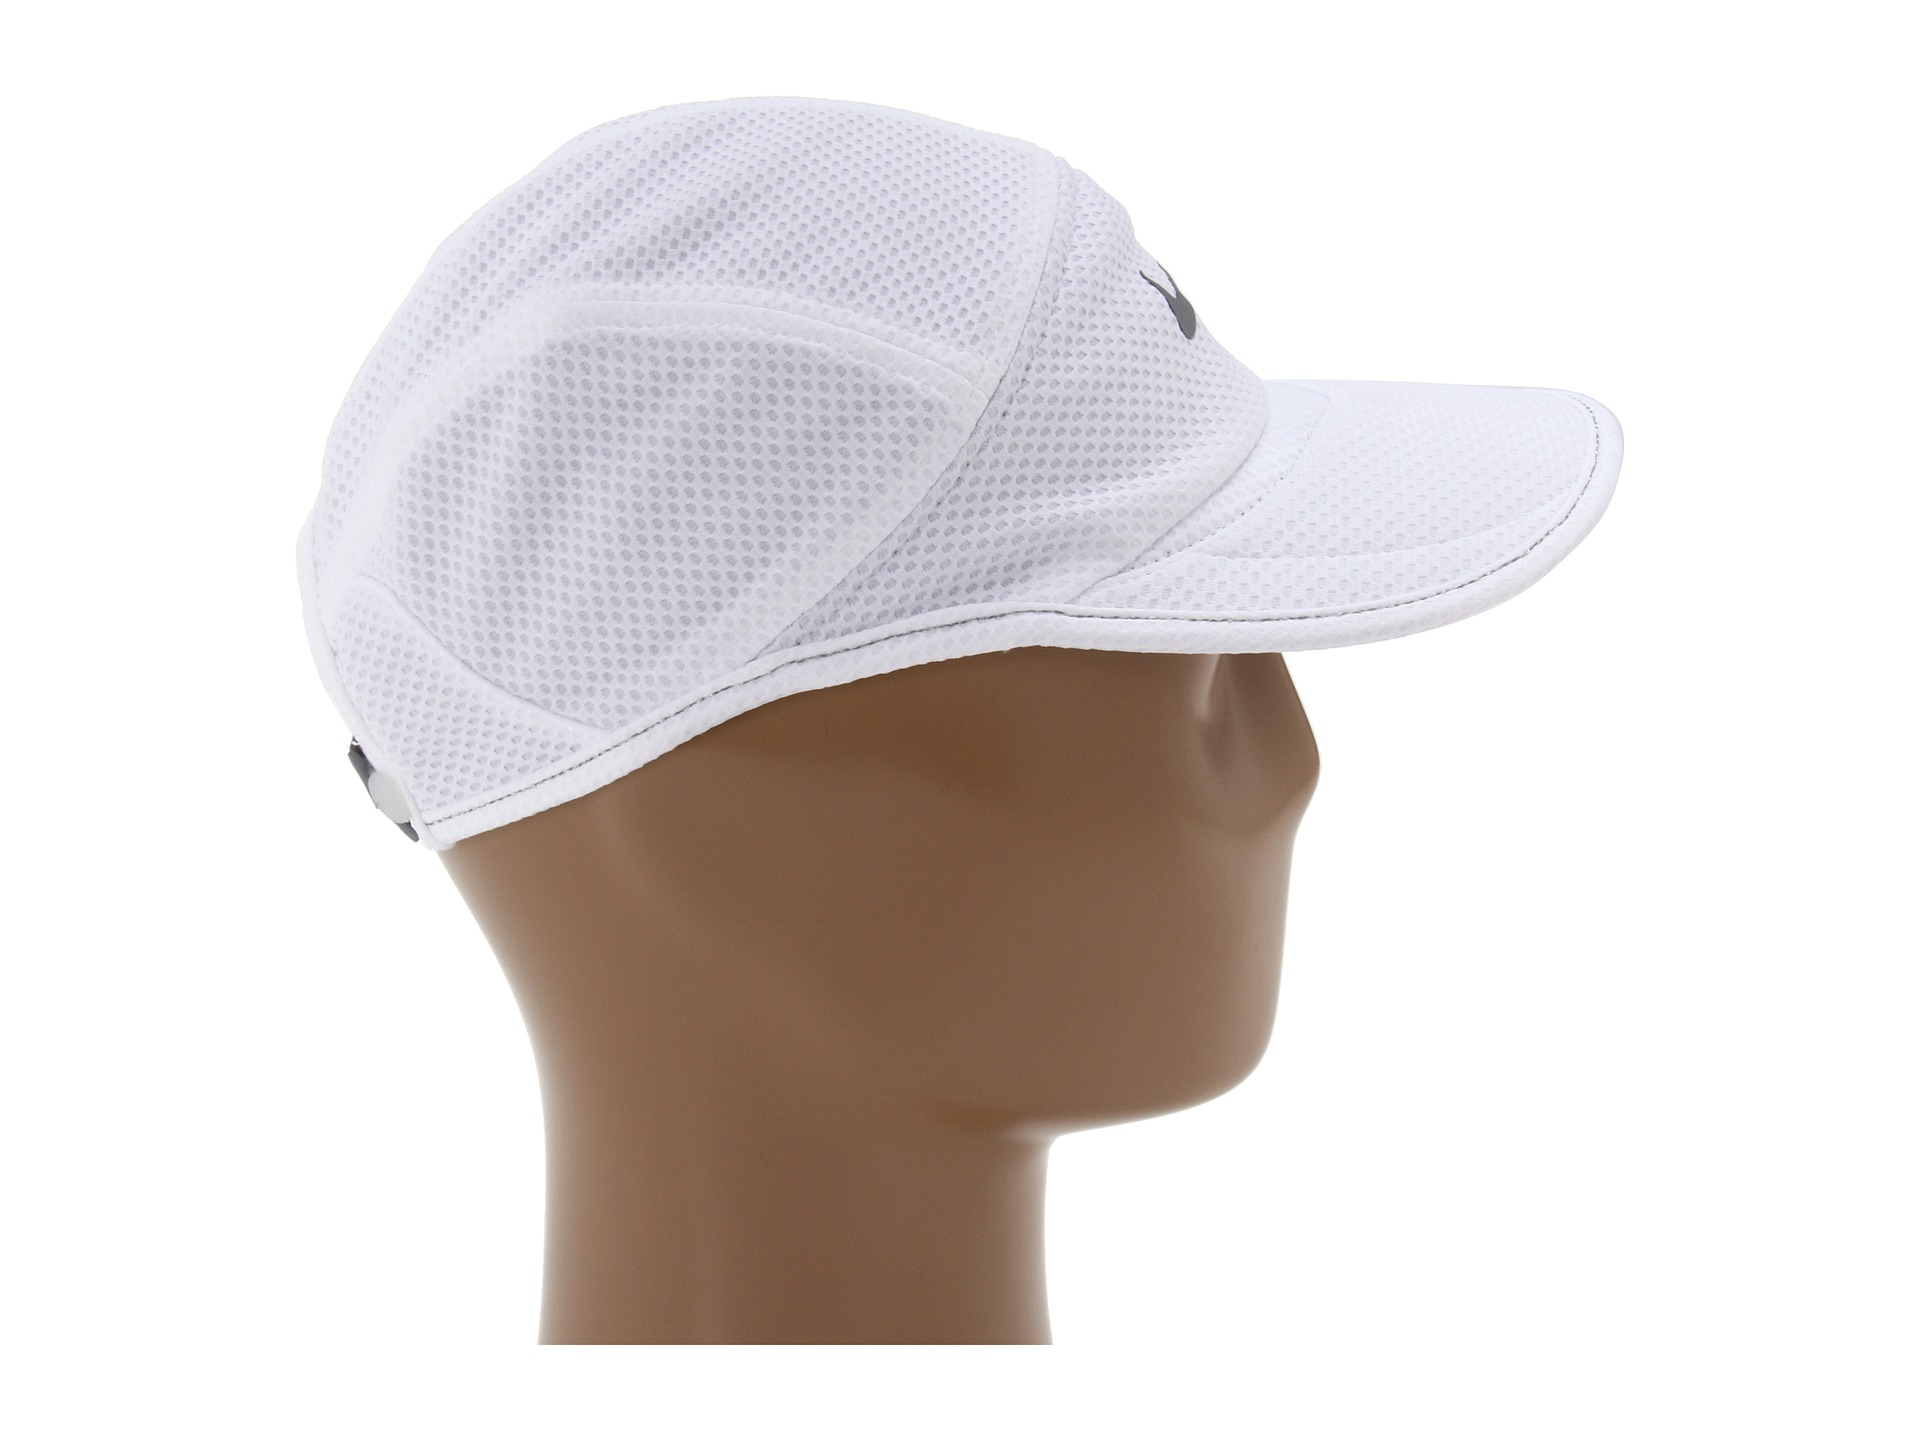 873065a8 Nike Mesh Daybreak Running Hat - The Best Photos Of Hat